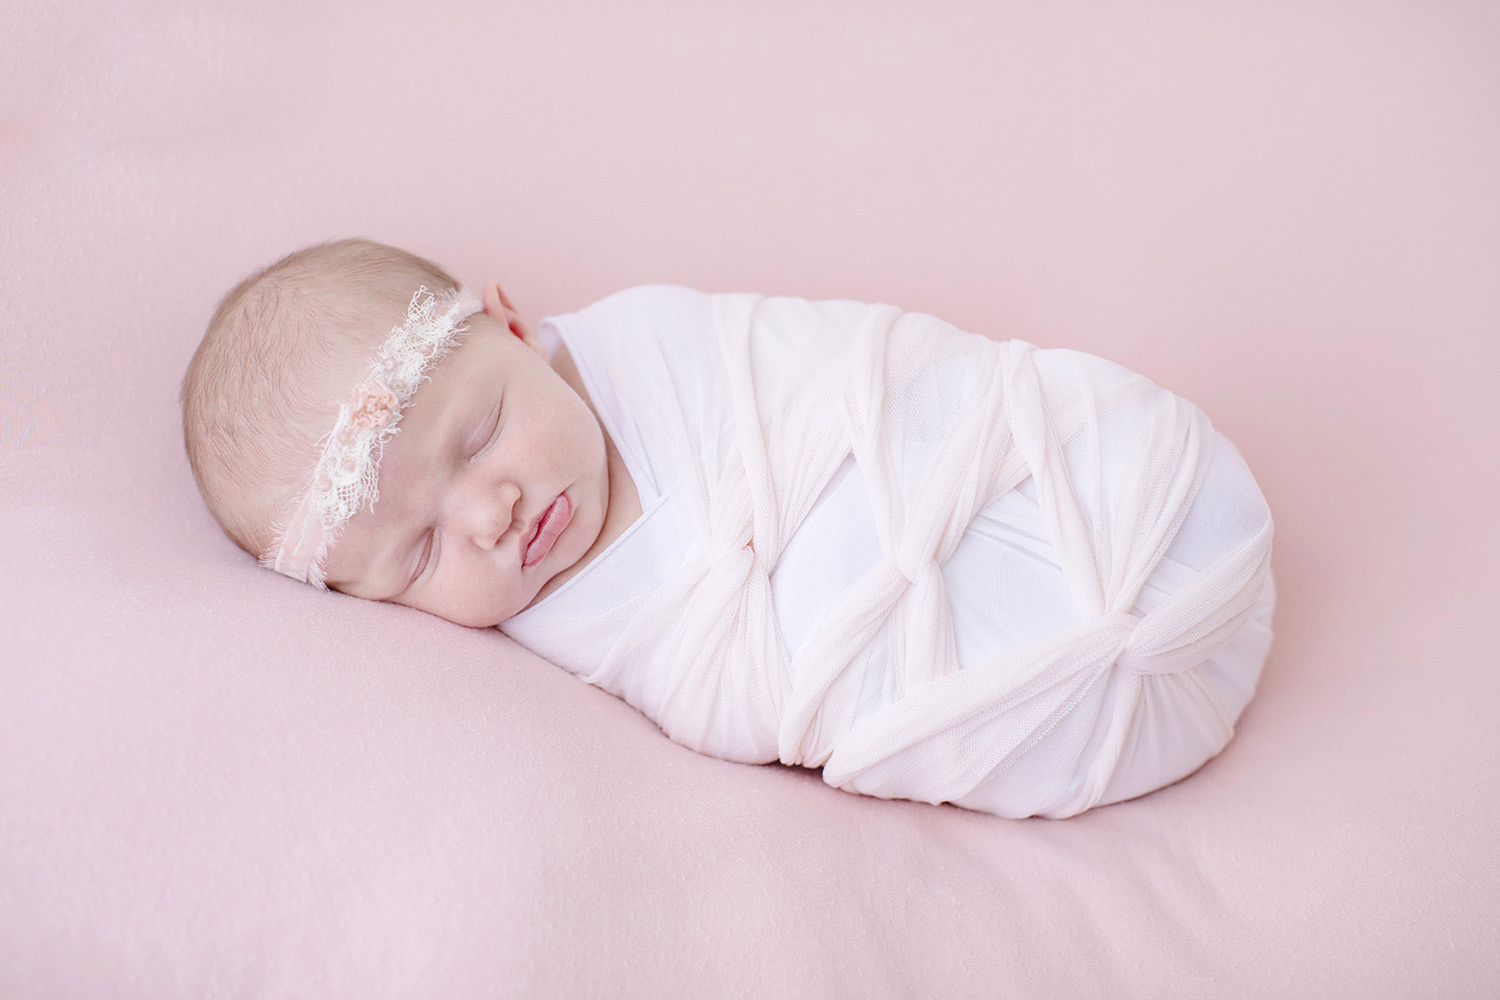 Ocean-Springs-Mississippi-Newborn-Photographer-Swetman-Photography.jpg